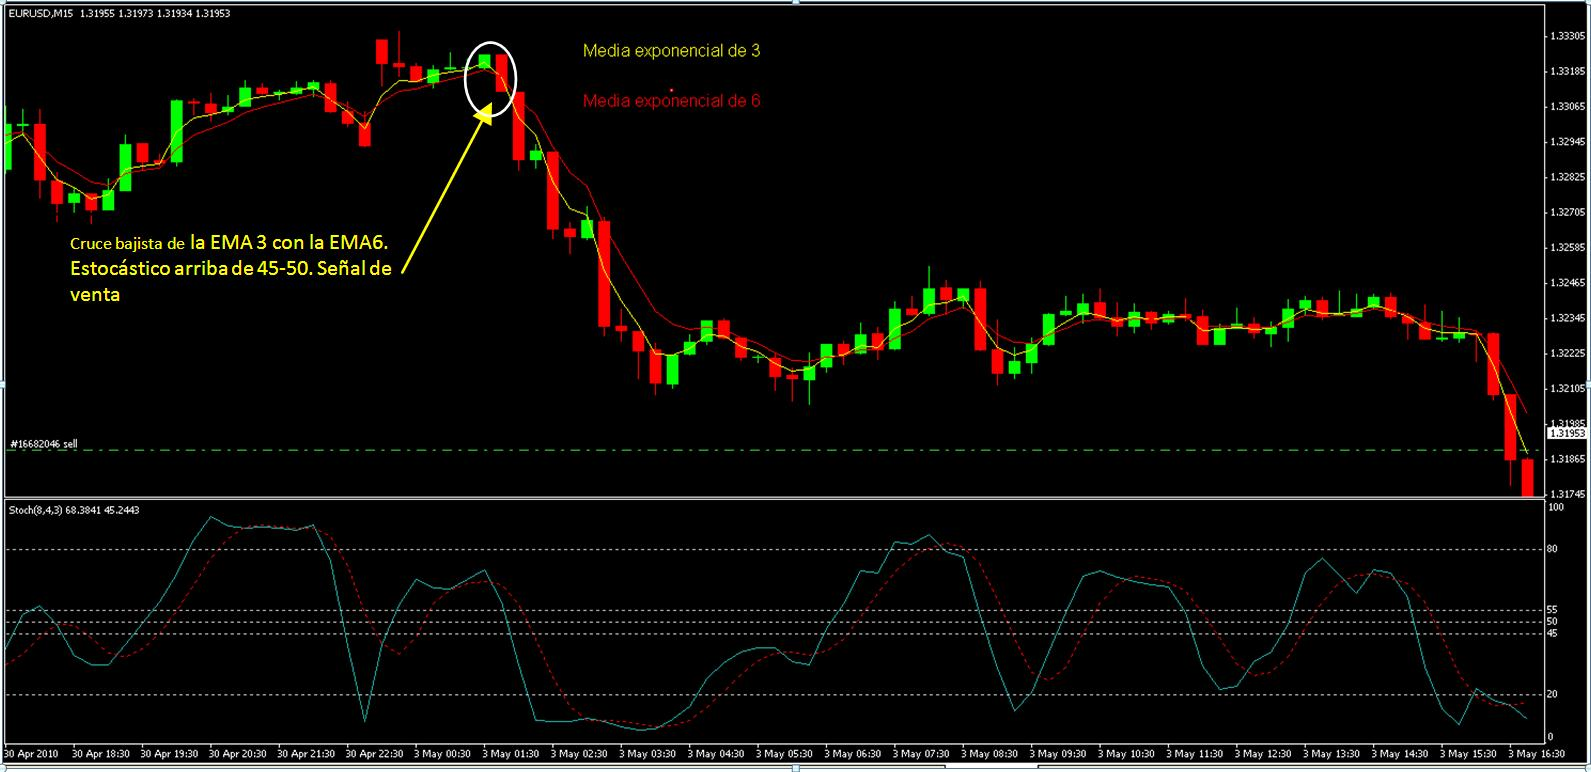 Intraday trading orb strategy